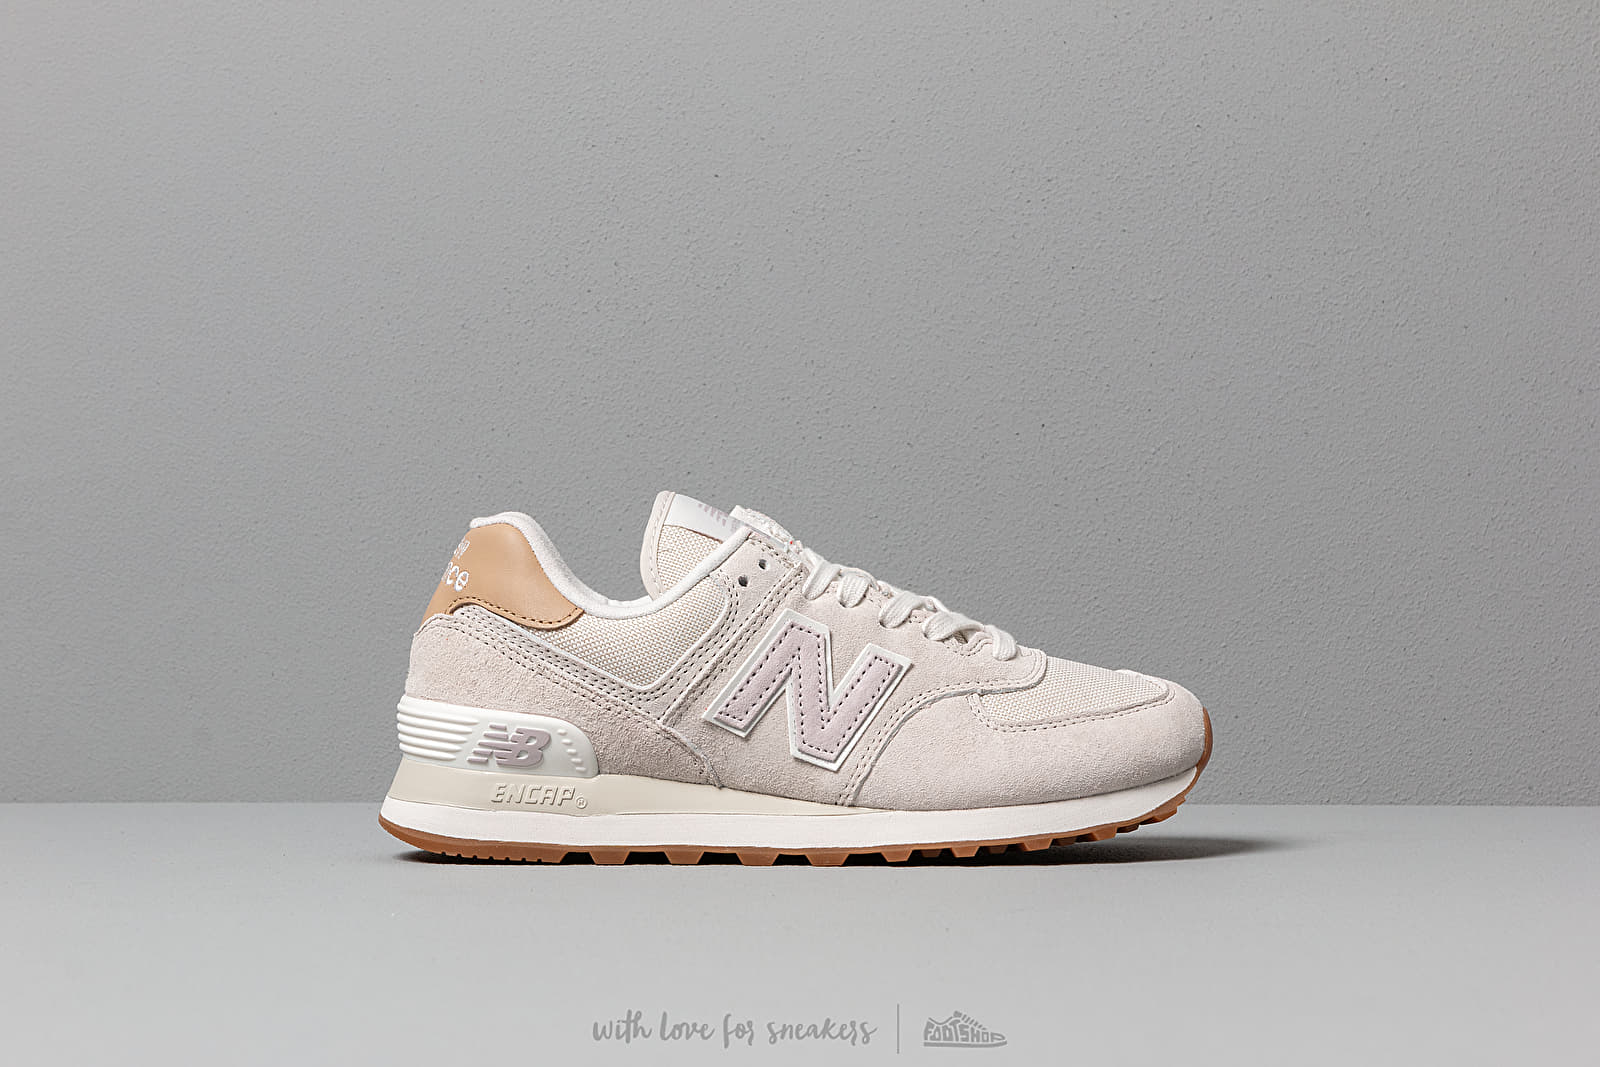 timeless design 51f2a 66806 New Balance 574 Light Cliff Grey  Light Cashmere at a great price 92 € buy